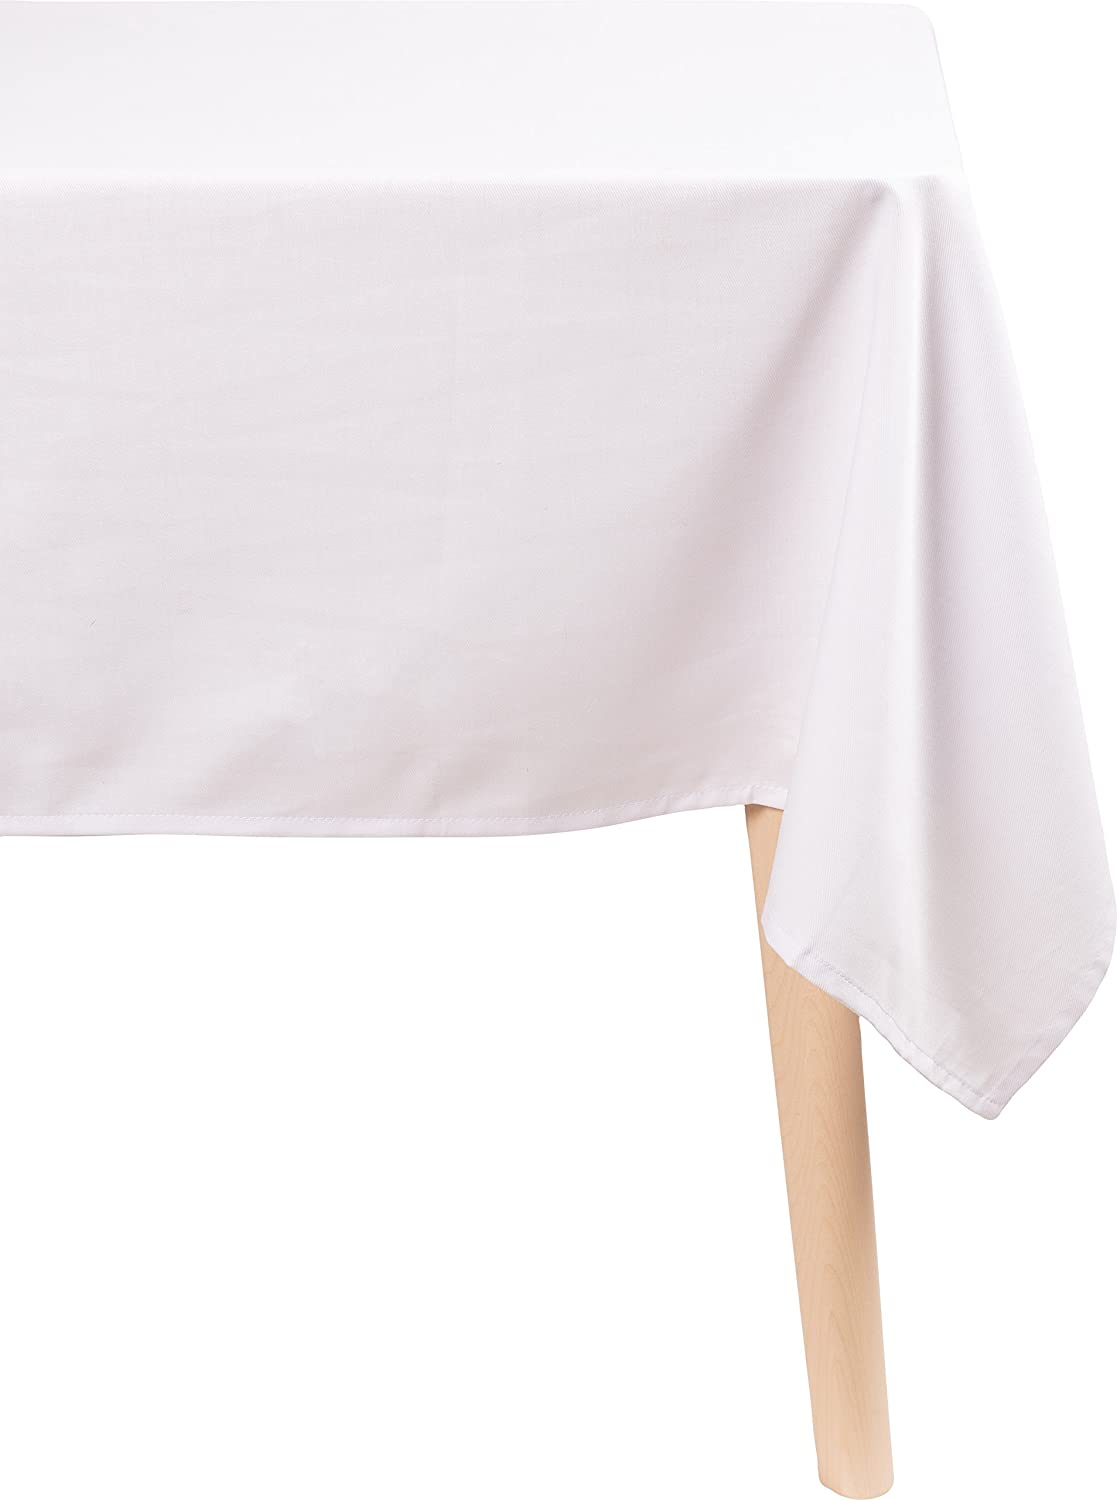 KAF Home Chateau Easy-Care Rectangle Cloth Tablecloth | 70 x 70 Inch Wrinkle Resistant Tablecloth | Perfect for Banquets, Buffet Tables, Parties, Holidays, Weddings, and Any Entertaining Event - White